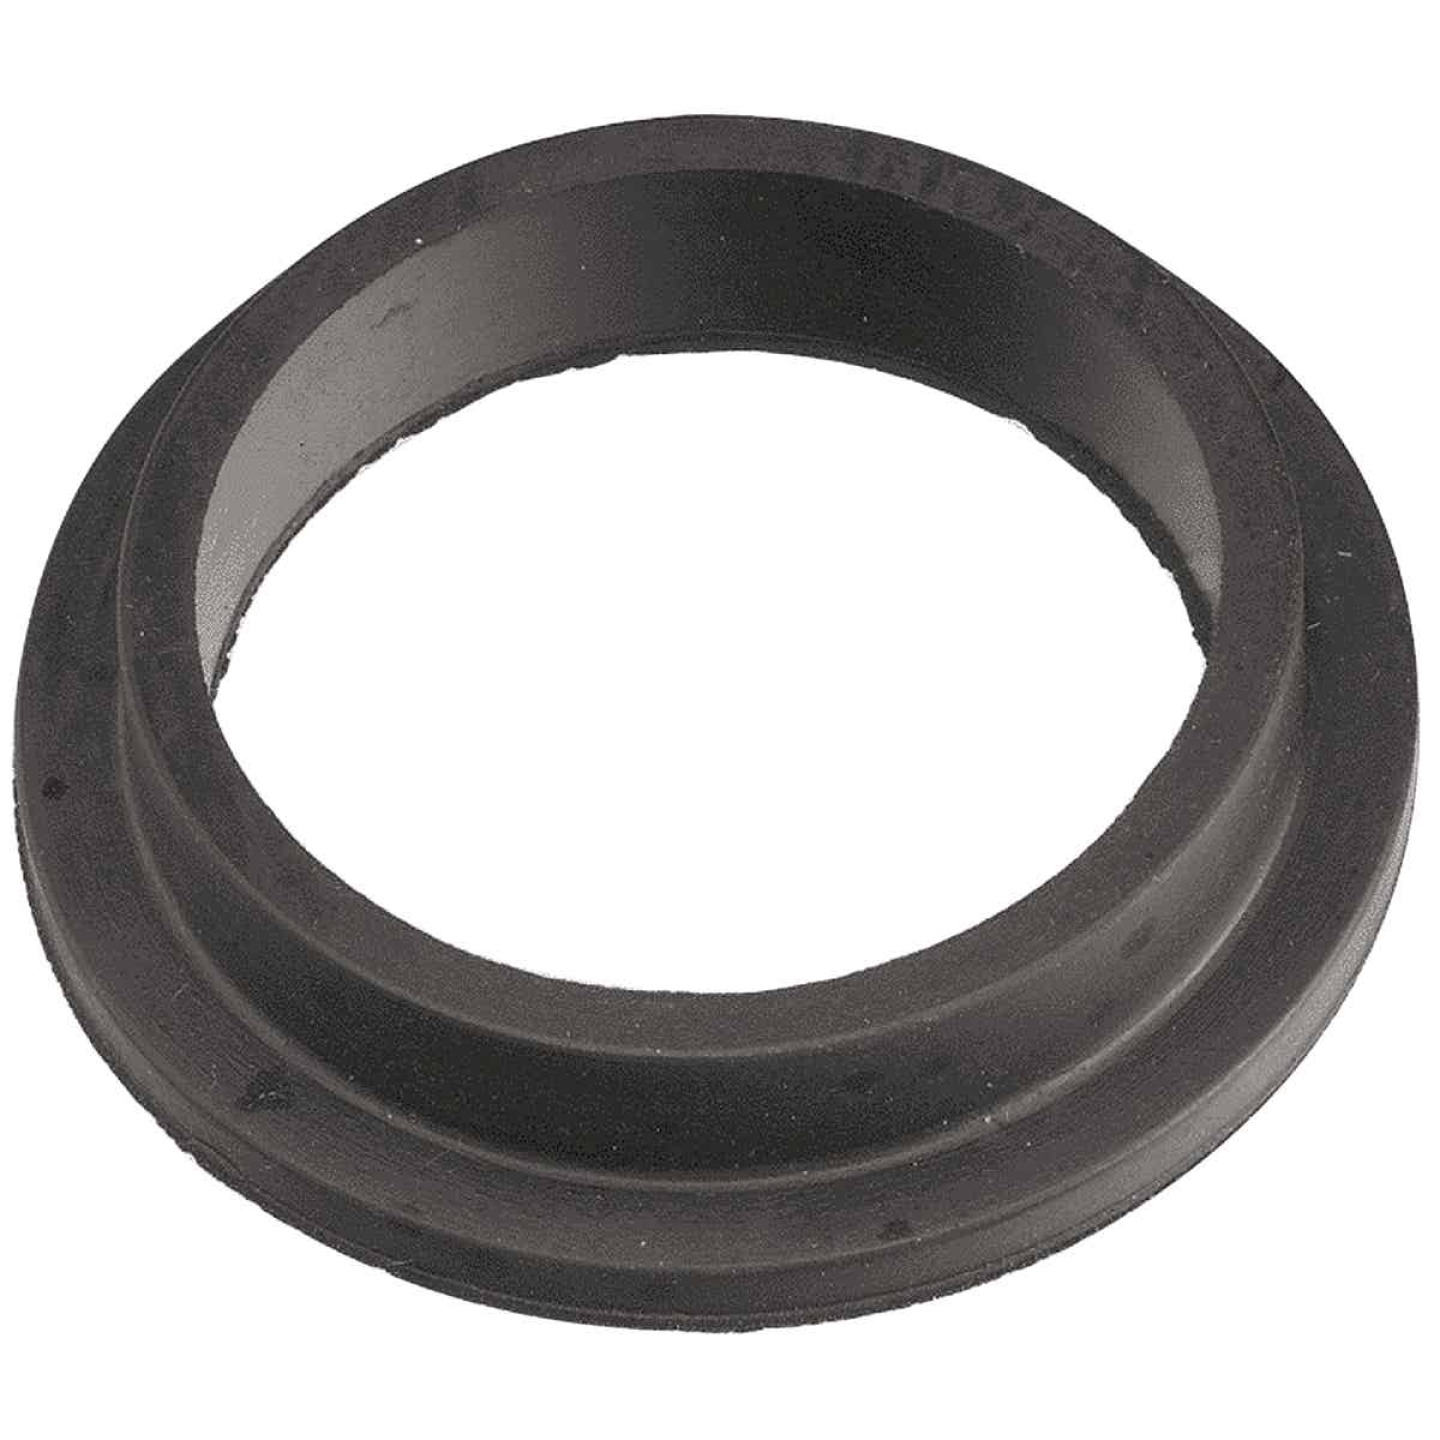 Do it 2 In. Black Rubber Toilet Spud Flanged Washer  Image 1